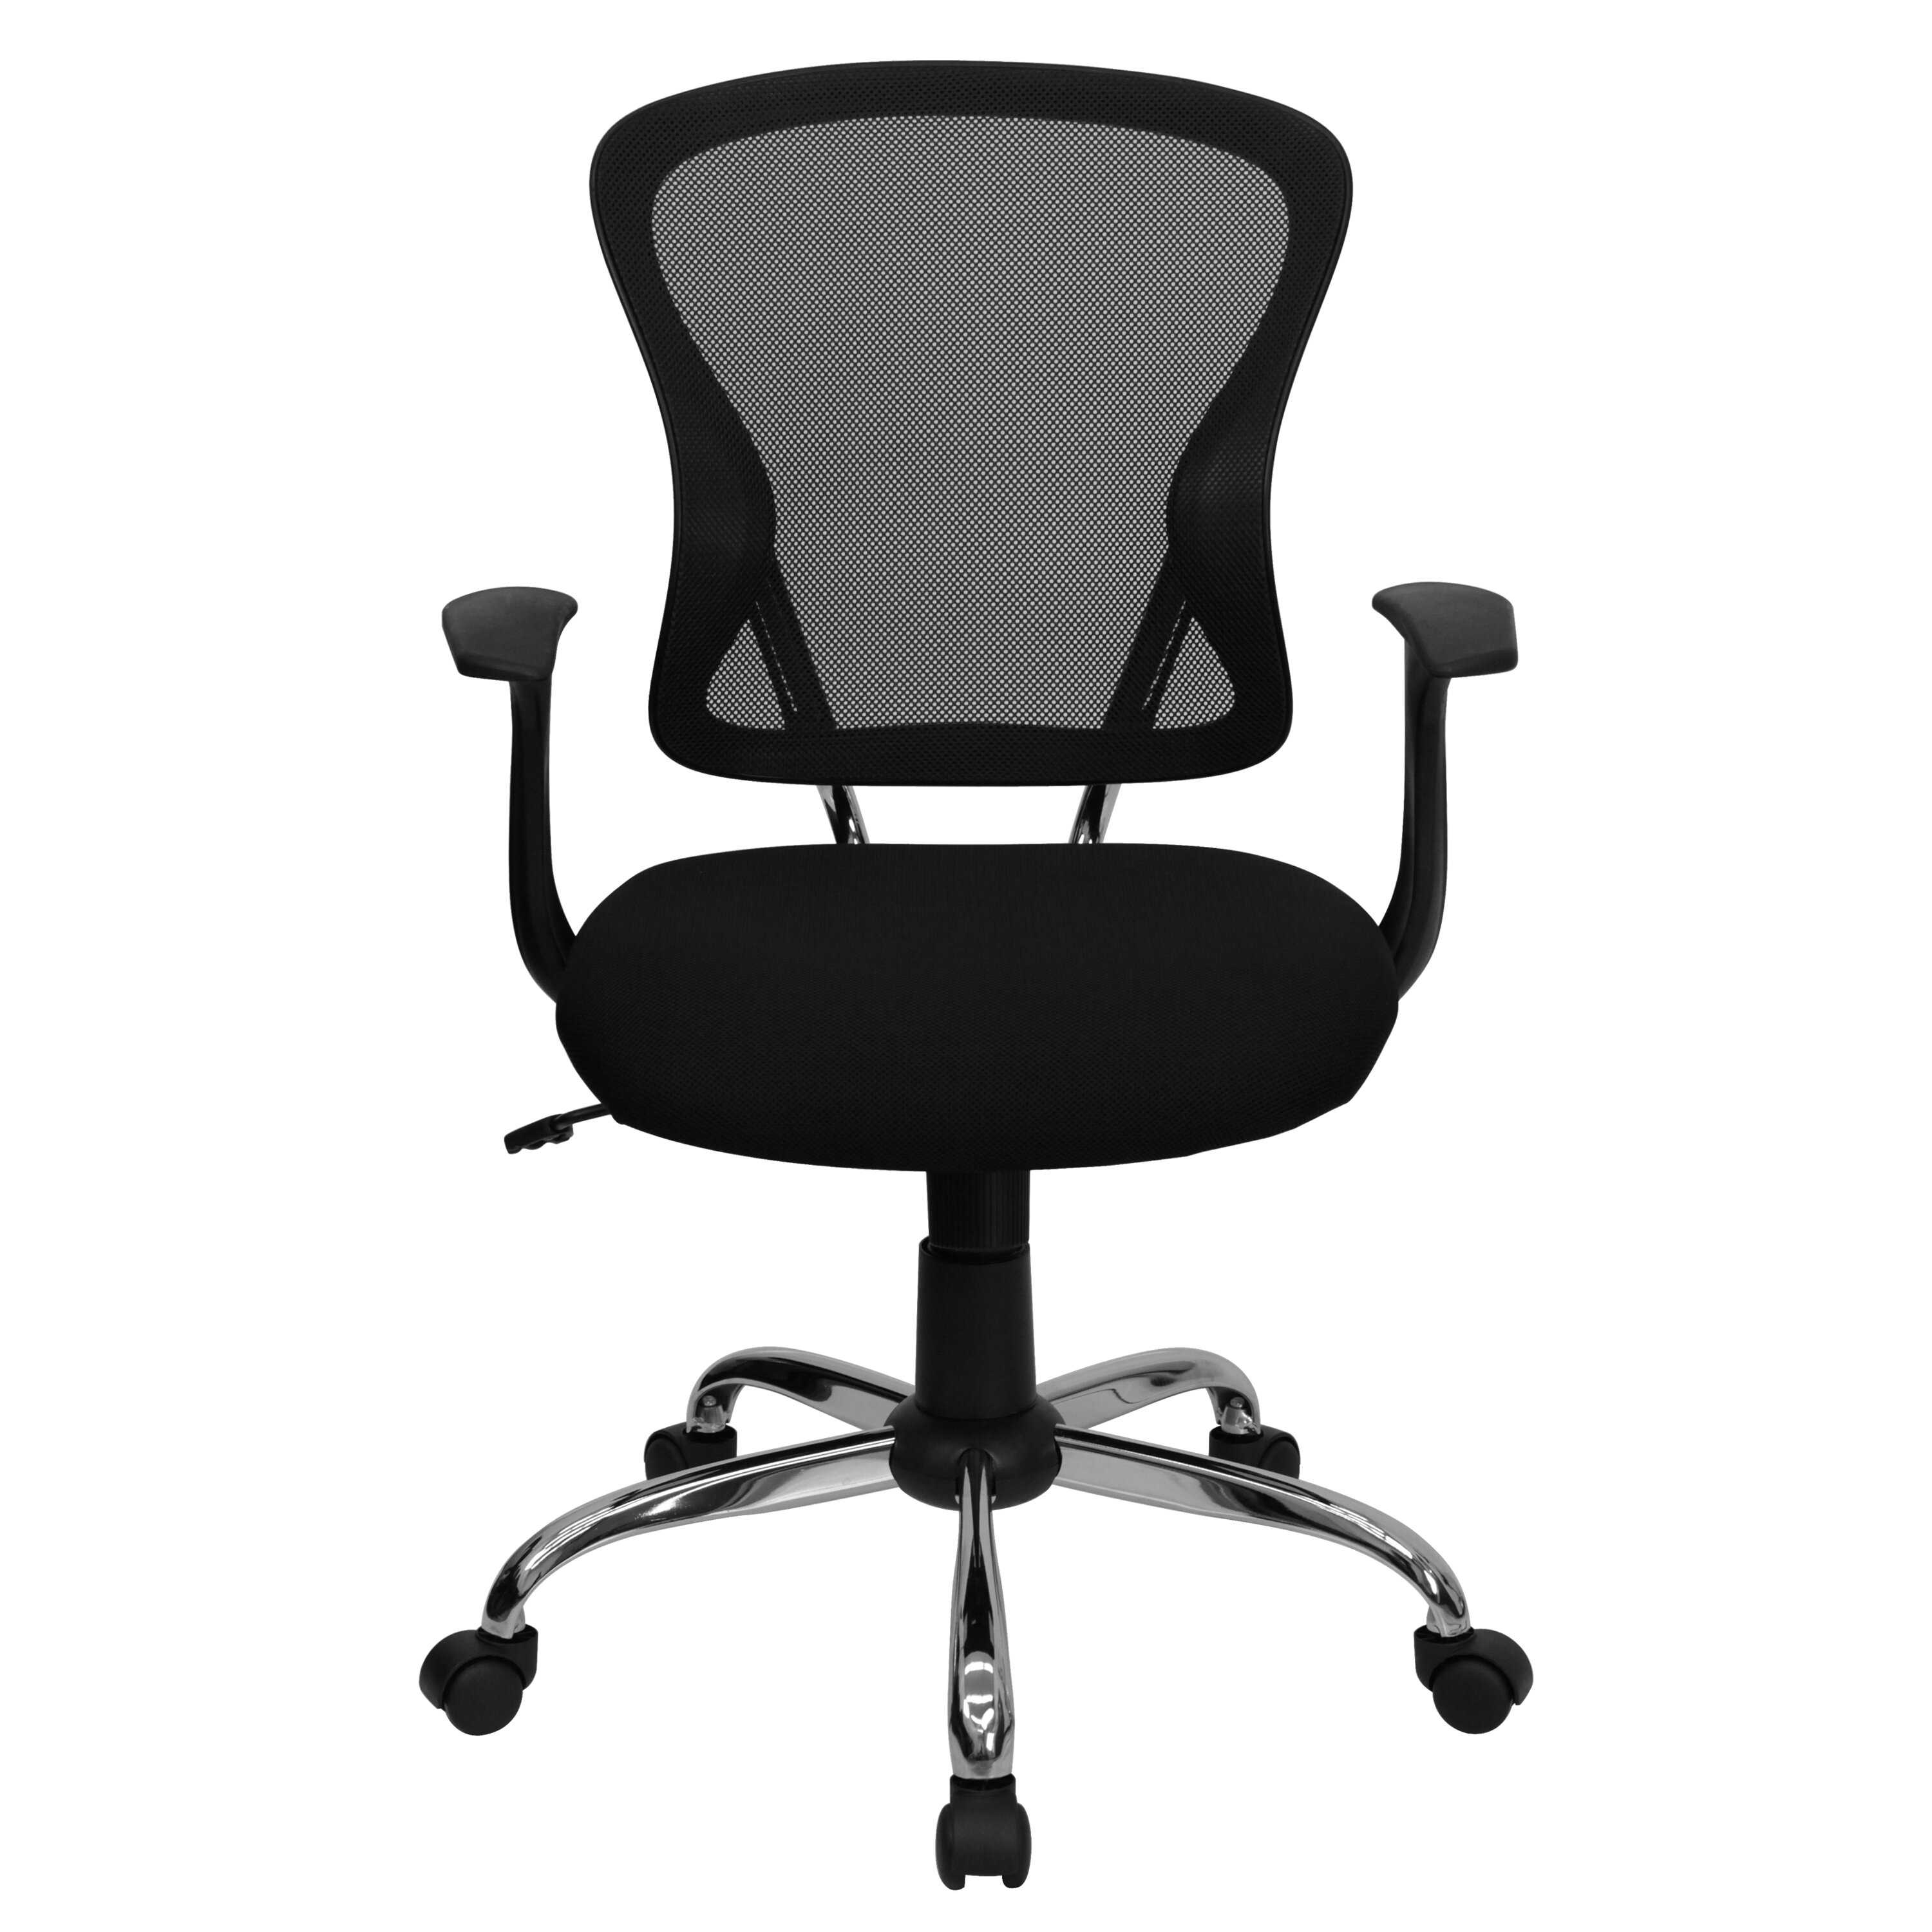 desk wayfair techni pdp reviews mesh furniture mobili ca chair